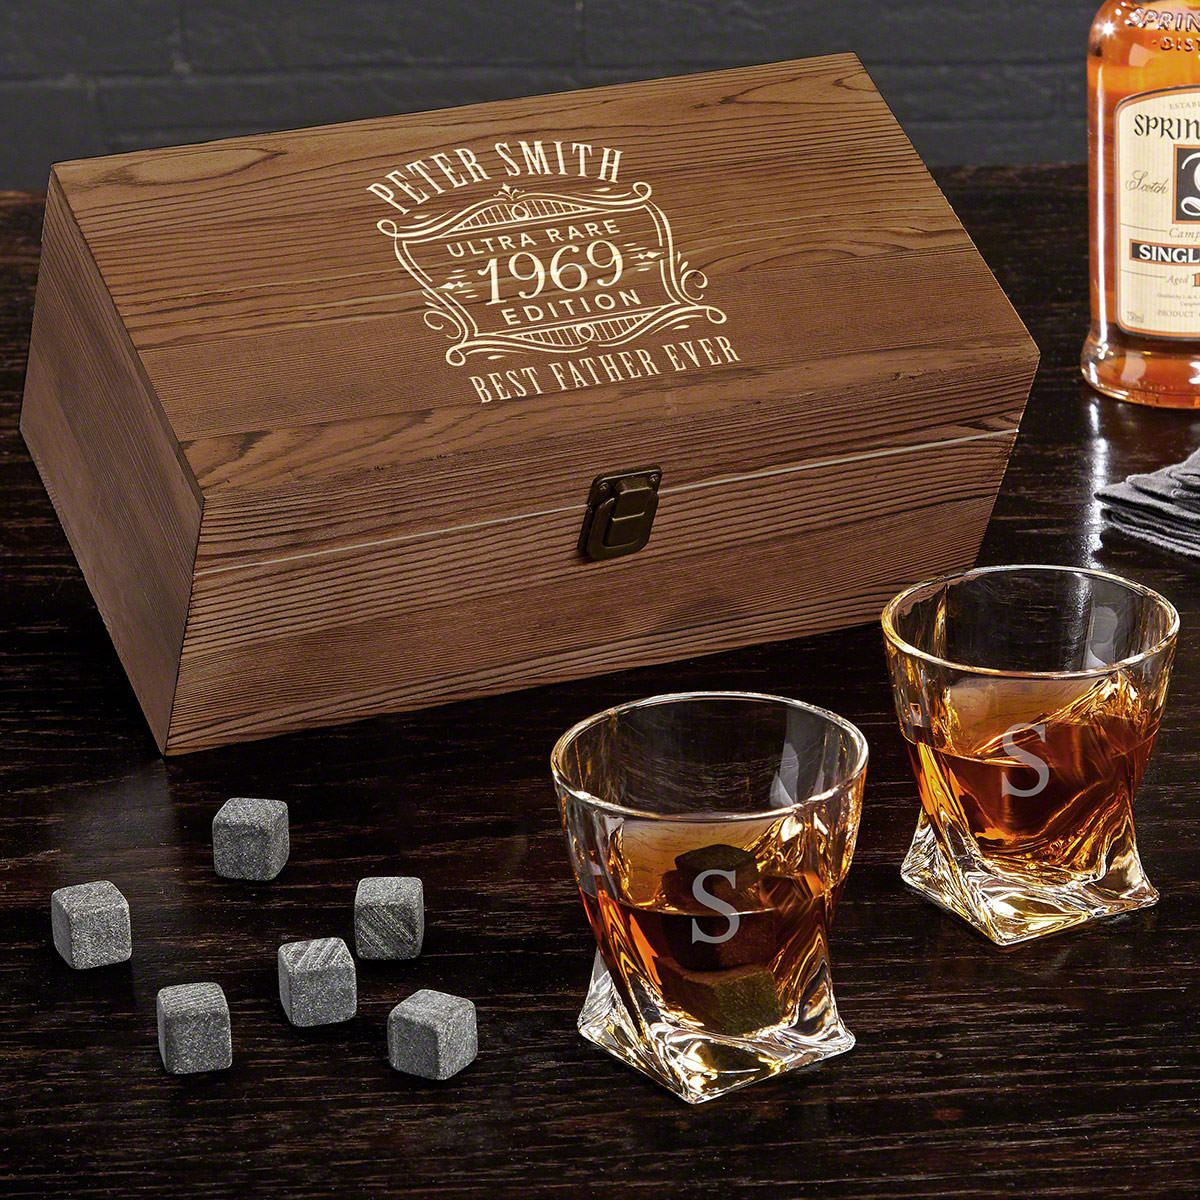 Ultra Rare Edition Personalized Whiskey Gift Box